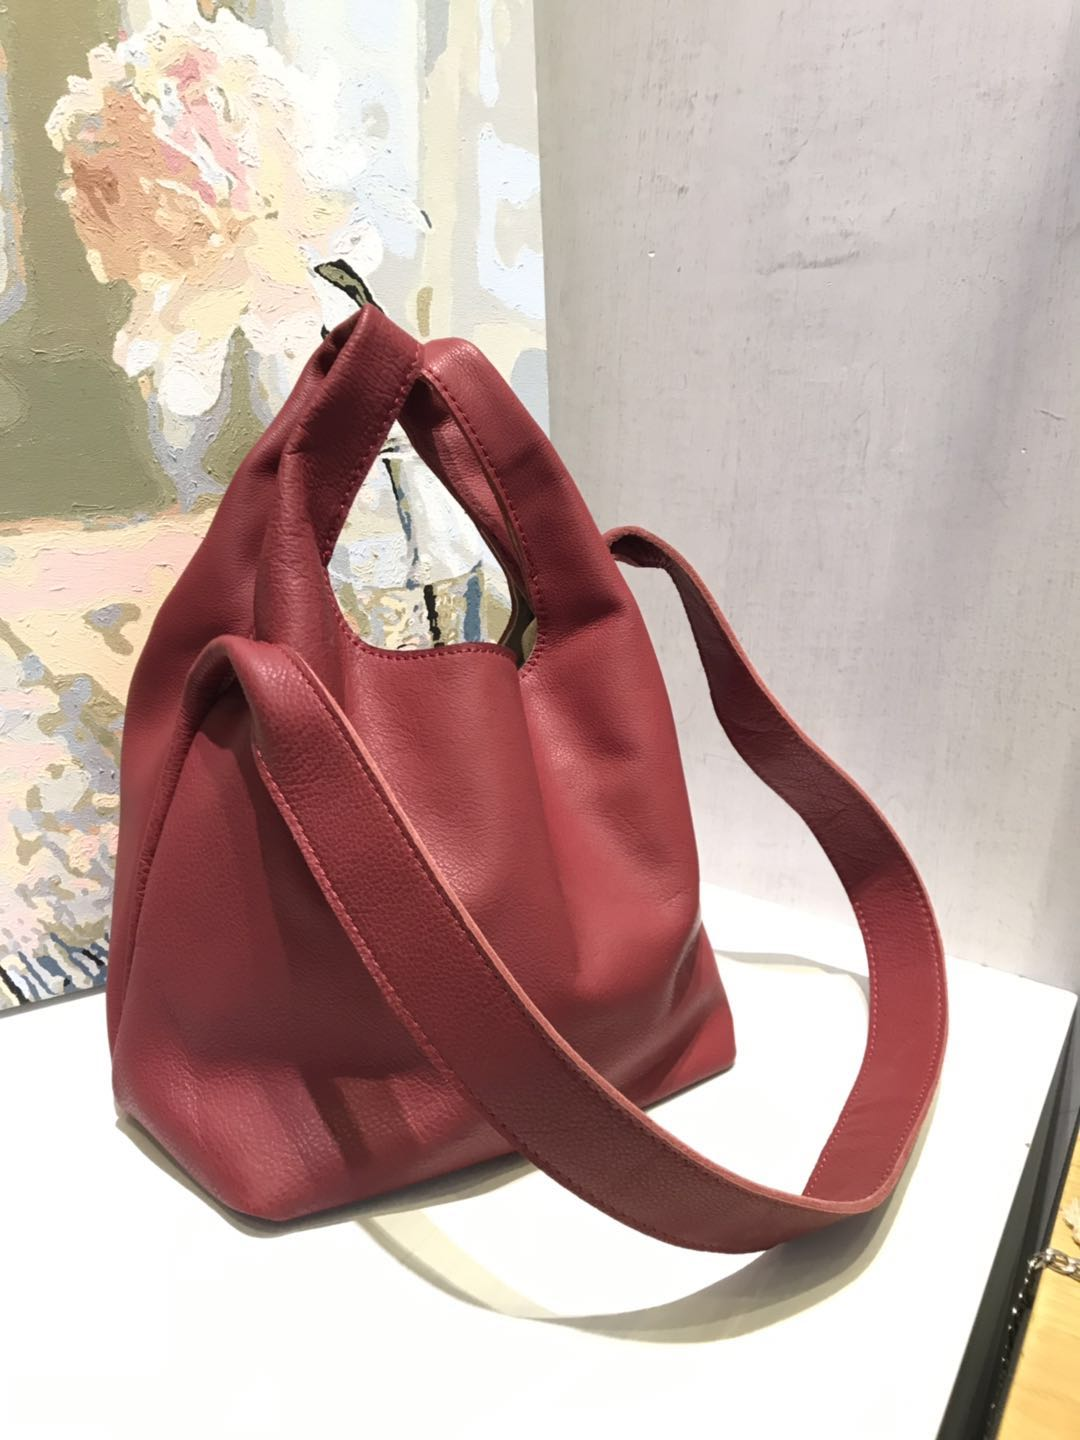 Vendange womens bag genuine leather handmade shoulder bag retro casual messenger bag 2557Vendange womens bag genuine leather handmade shoulder bag retro casual messenger bag 2557